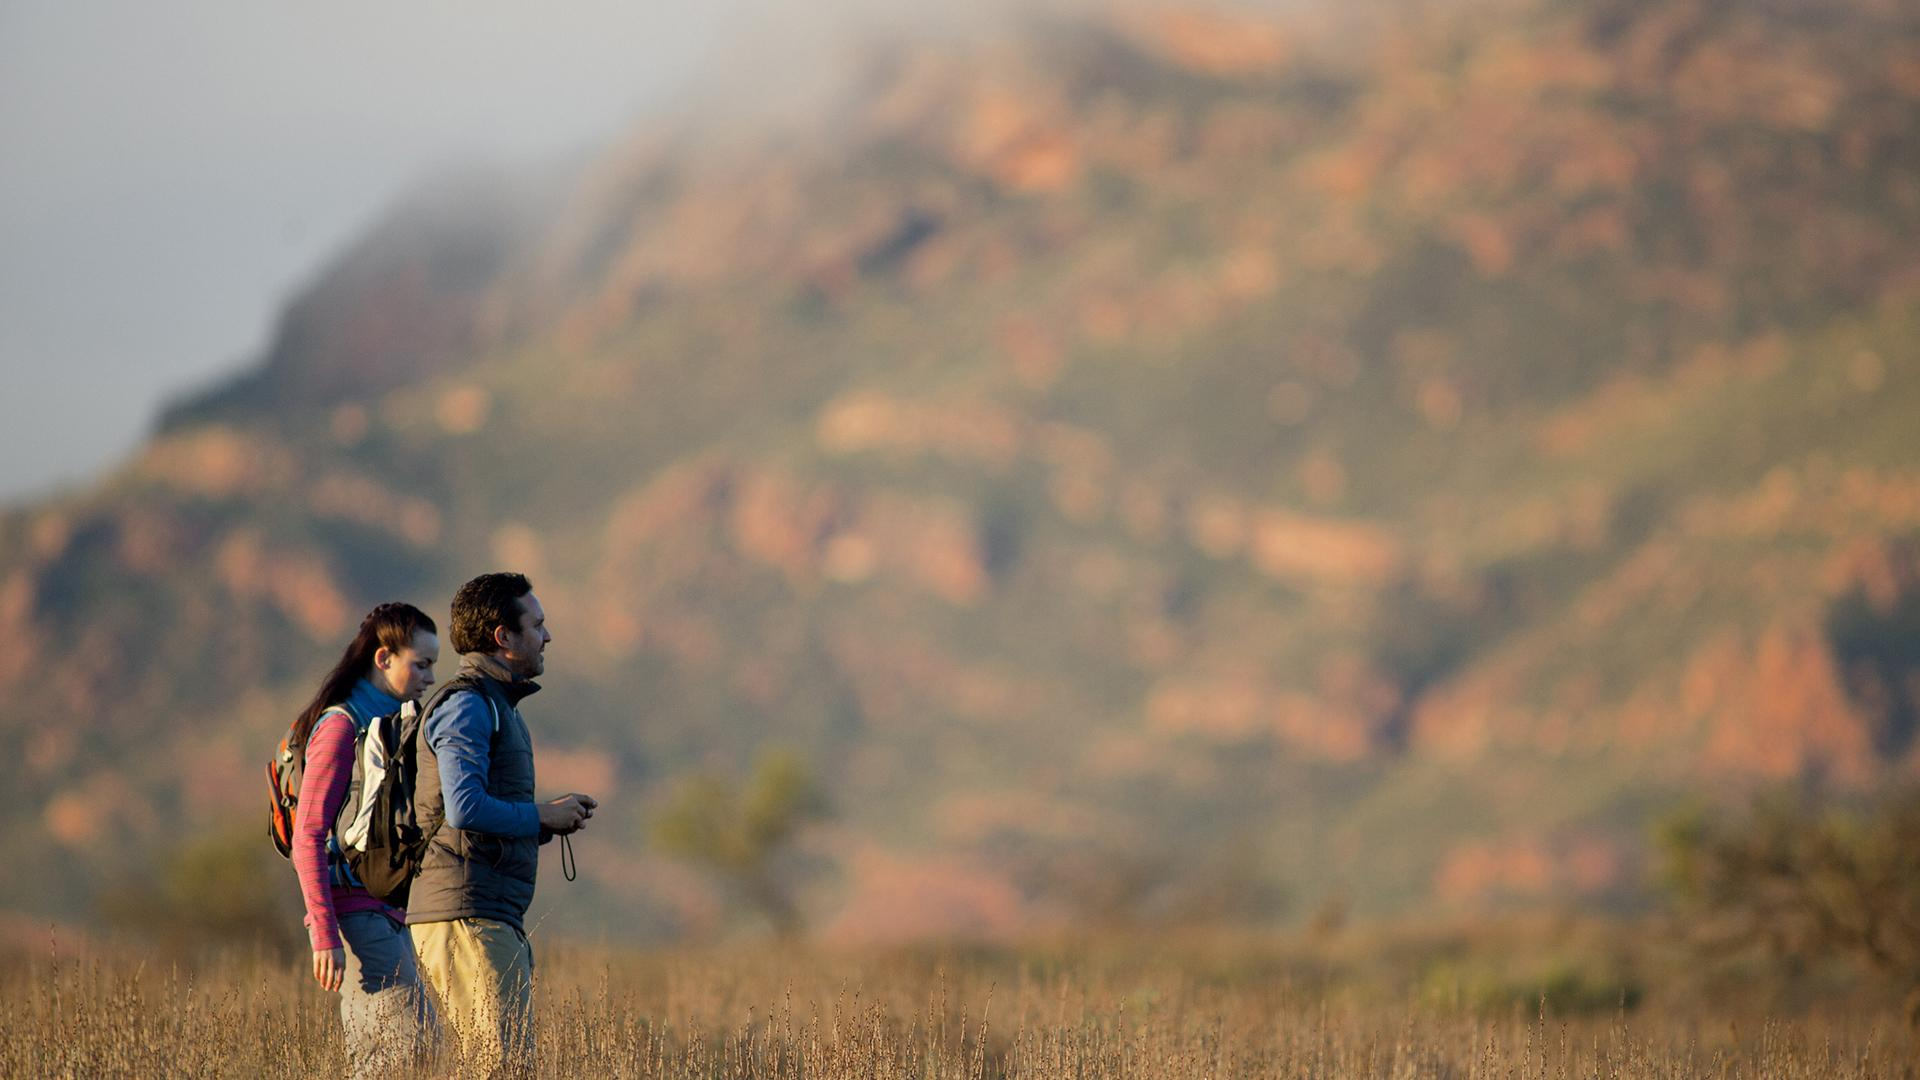 Scenic Walking Tour Of The Flinders Ranges In South Australia S Images, Photos, Reviews